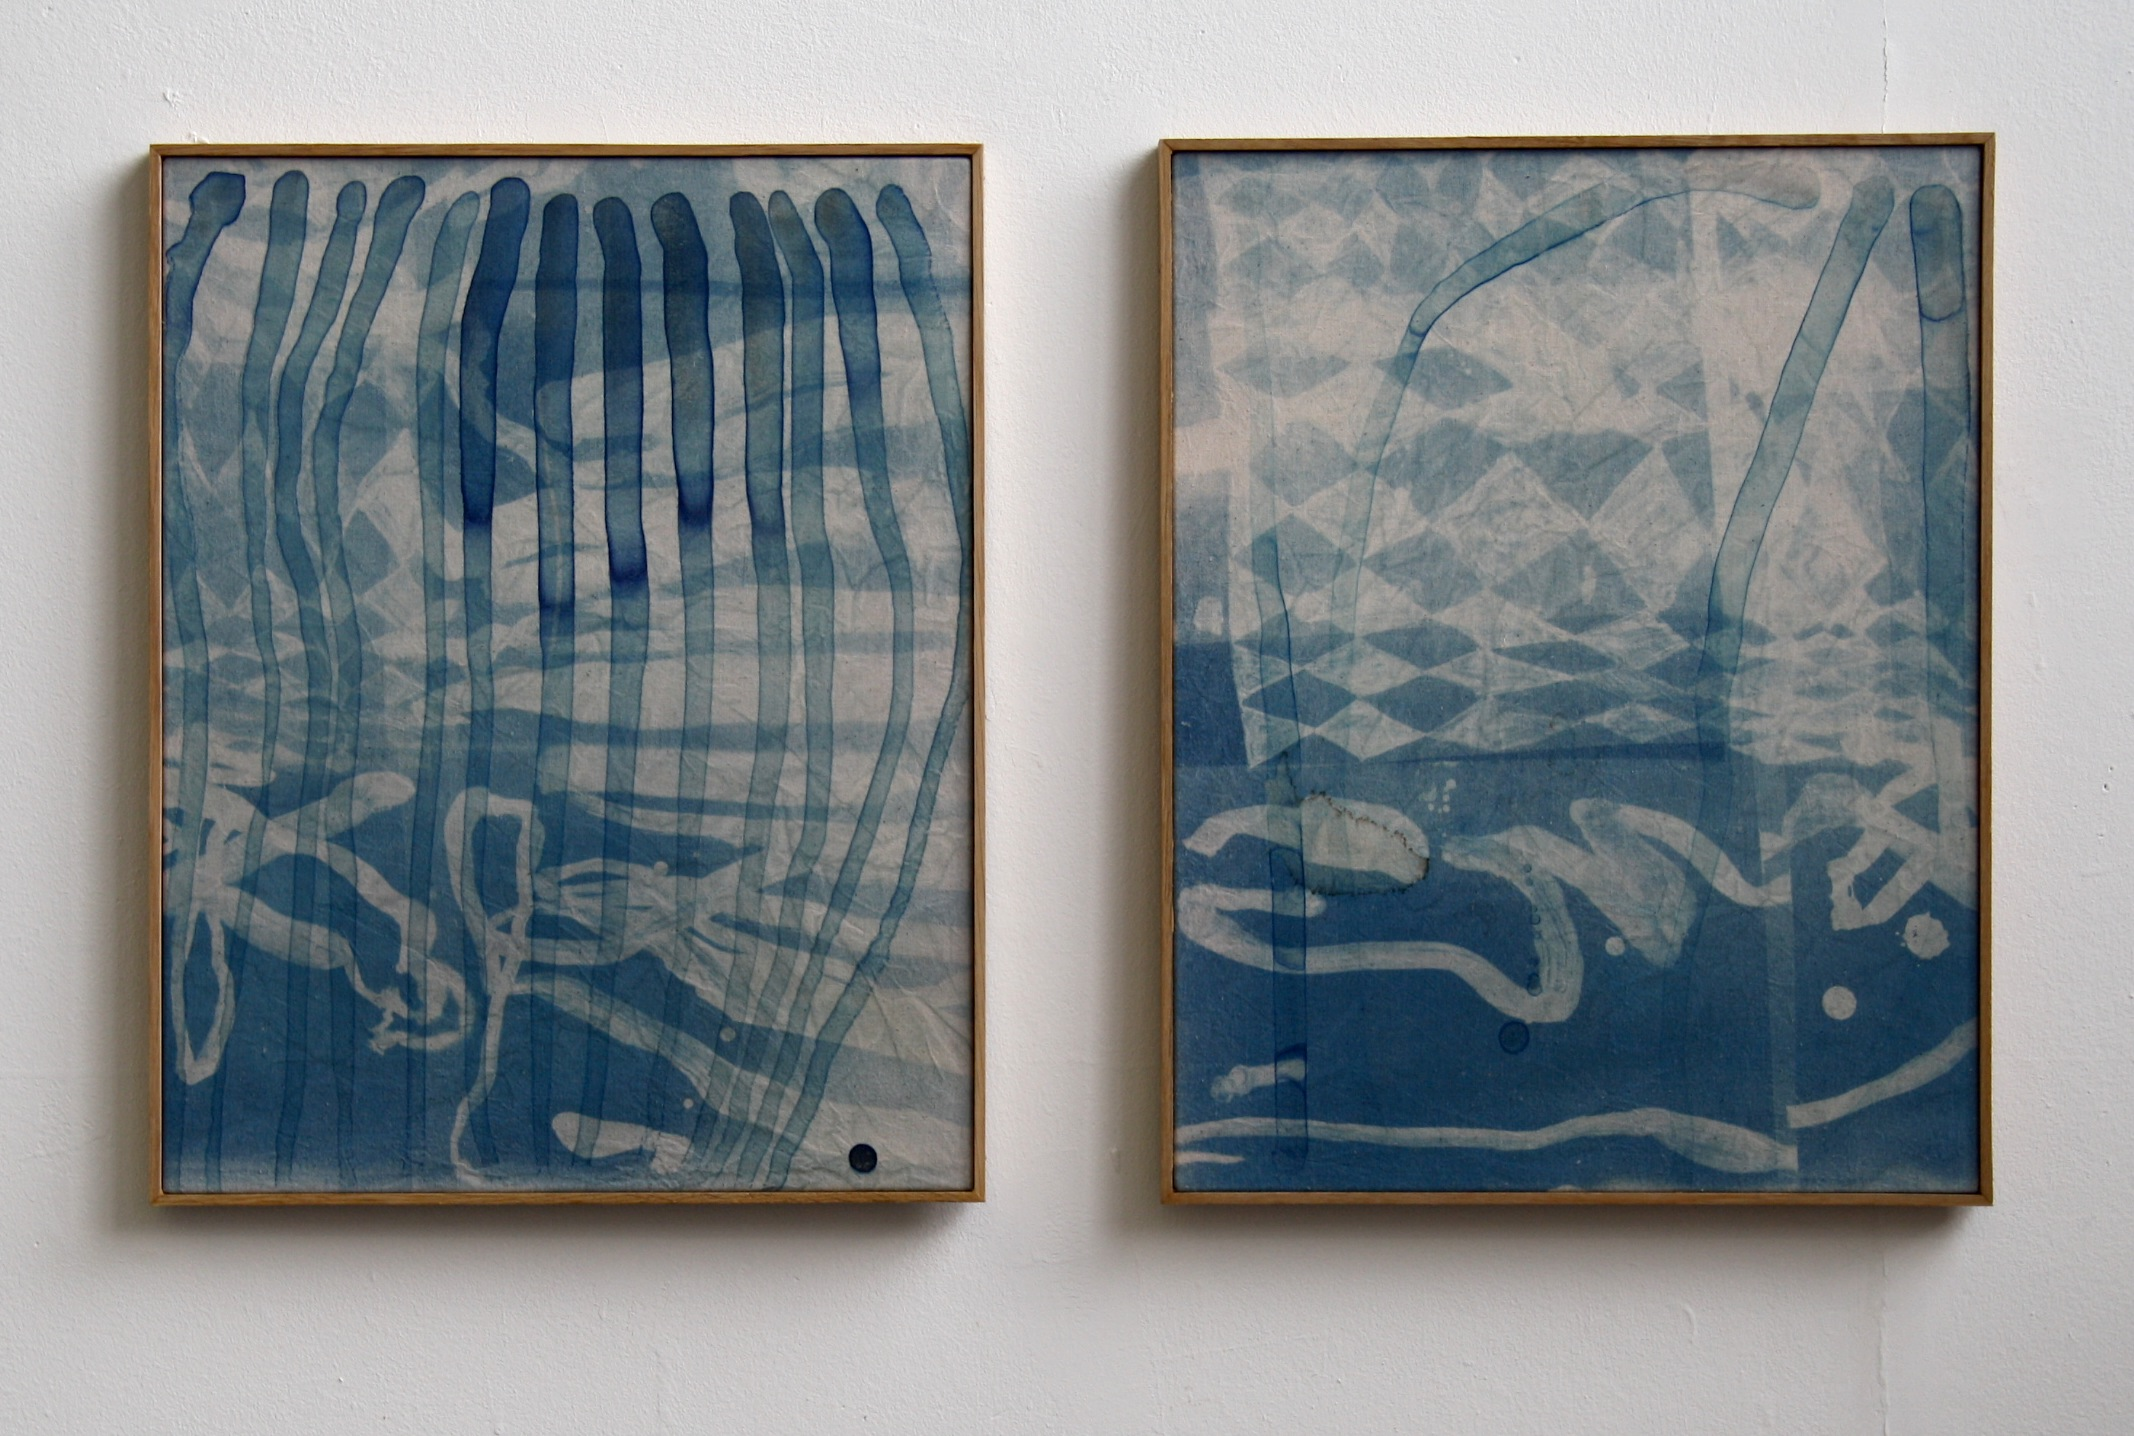 Aimée Parrott, Untitled 1  and  Untitled 2 ,2015,Cyanotype and watercolour screen-print on calico with artist's frame (oak),2 x 47 x 37 cm